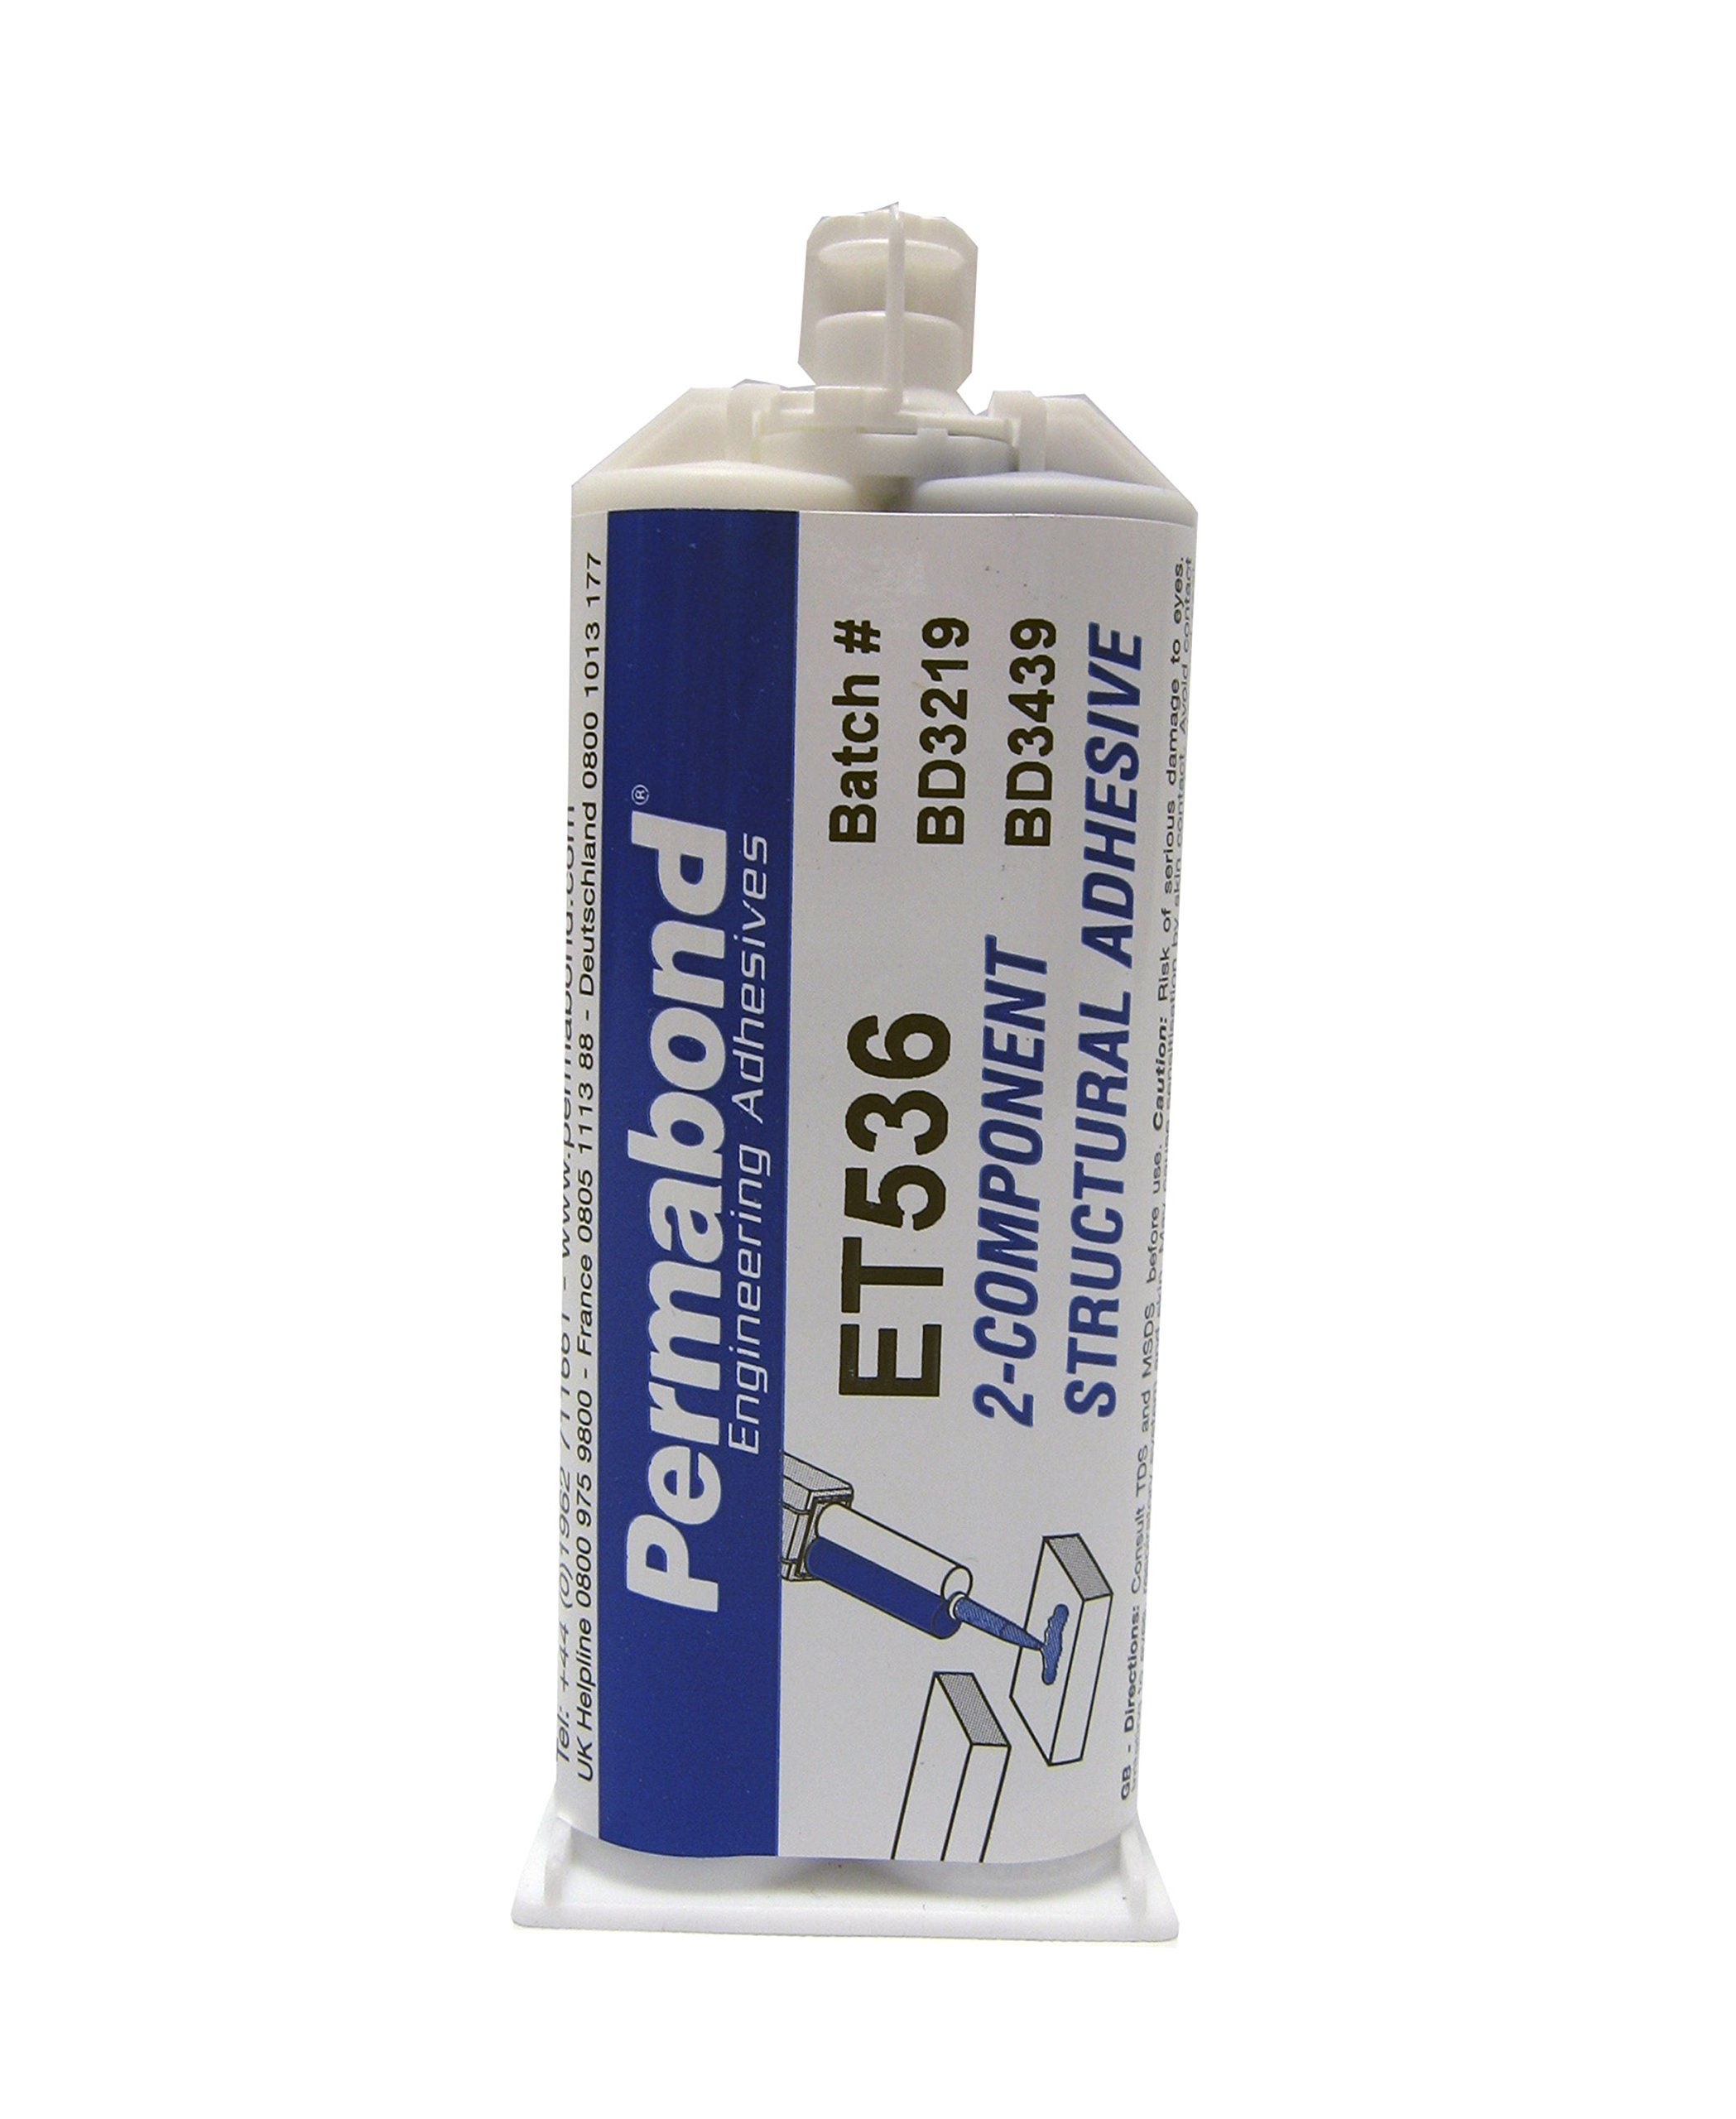 Permabond ET536/50 Structural Adhesive, Two-Component, 50 mL